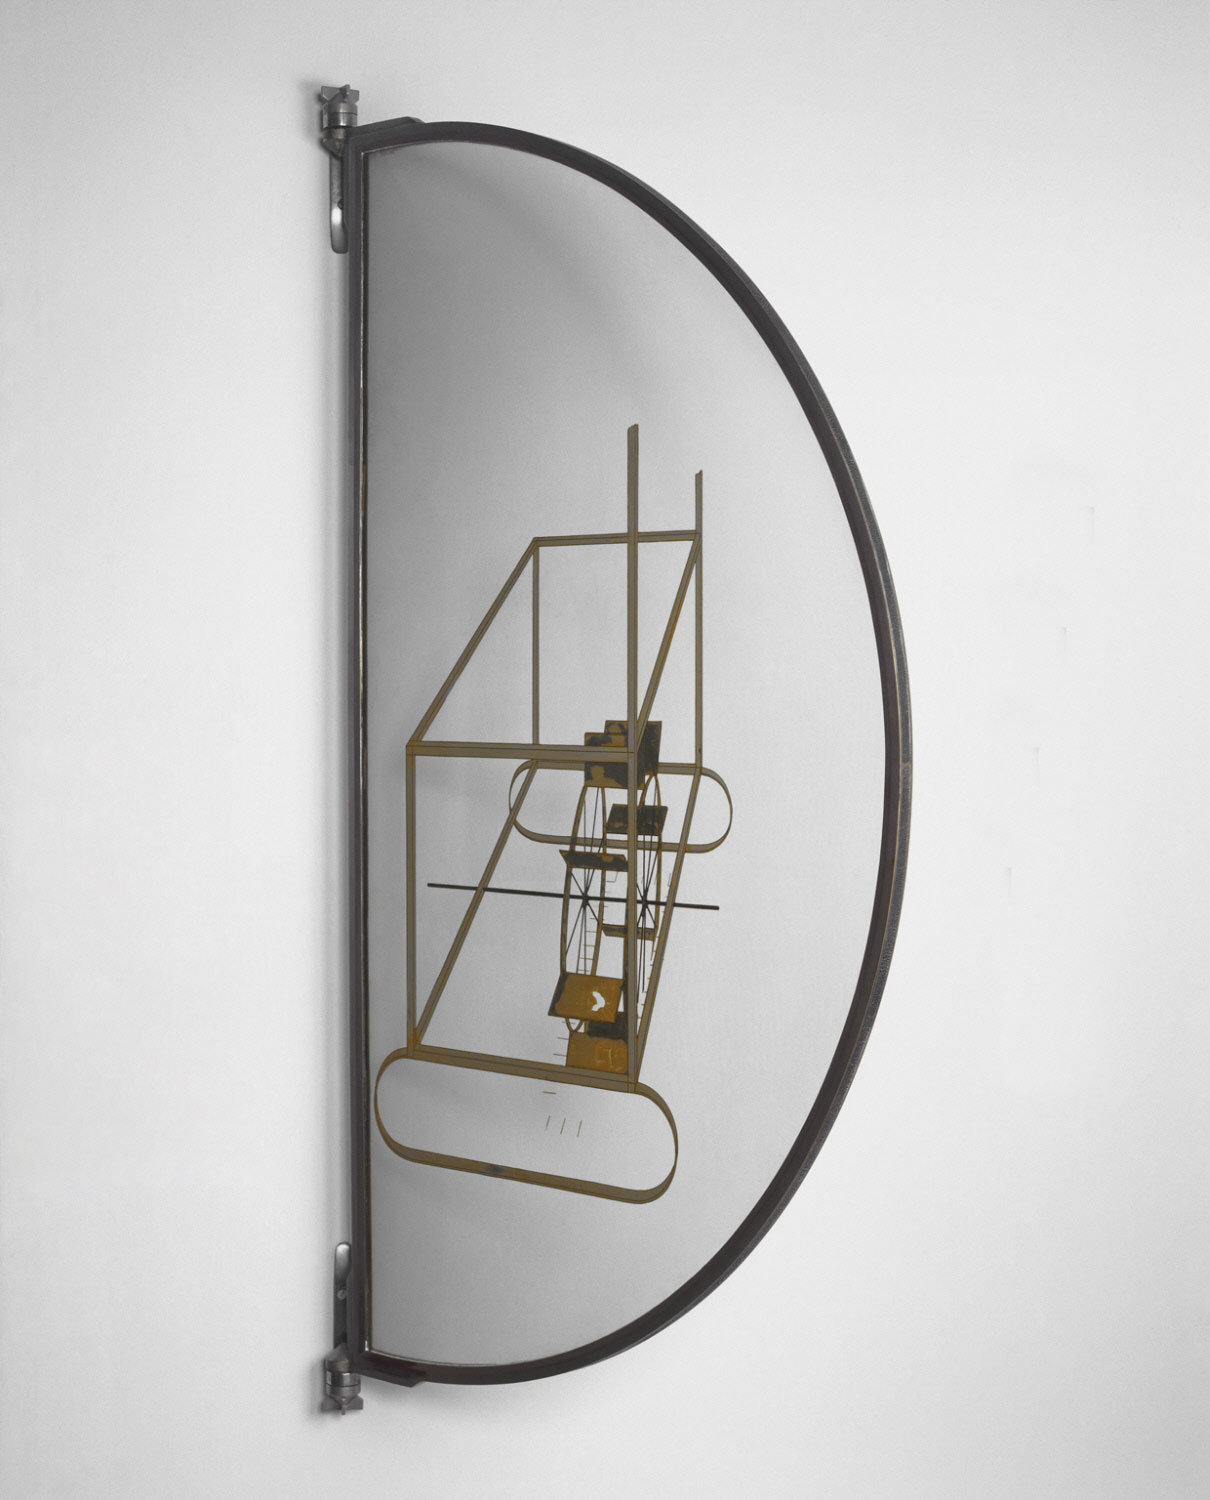 Glider Containing a Water Mill in Neighboring Metals, 1915 — Marcel Duchamp